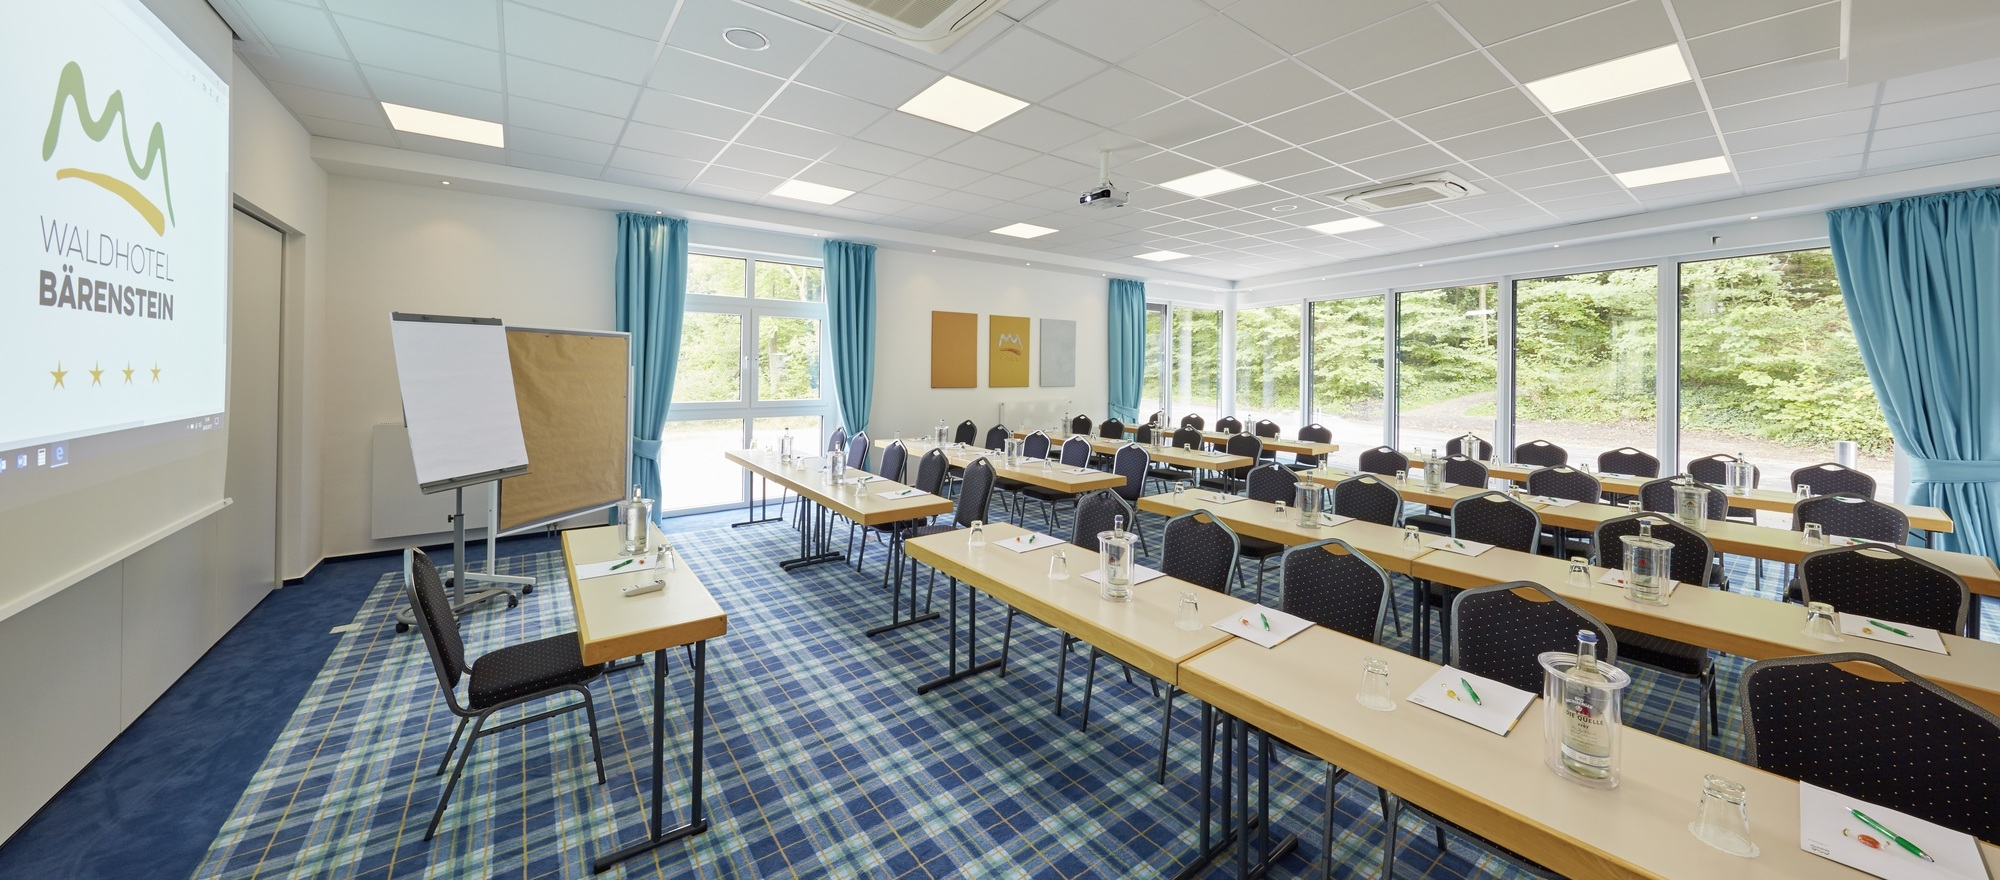 Your seminars, workshops and conferences at the Ringhotel Waldhotel Bärenstein in Horn-Bad Meinberg, 4-Sterne Hotel in the Teutoburg Forest